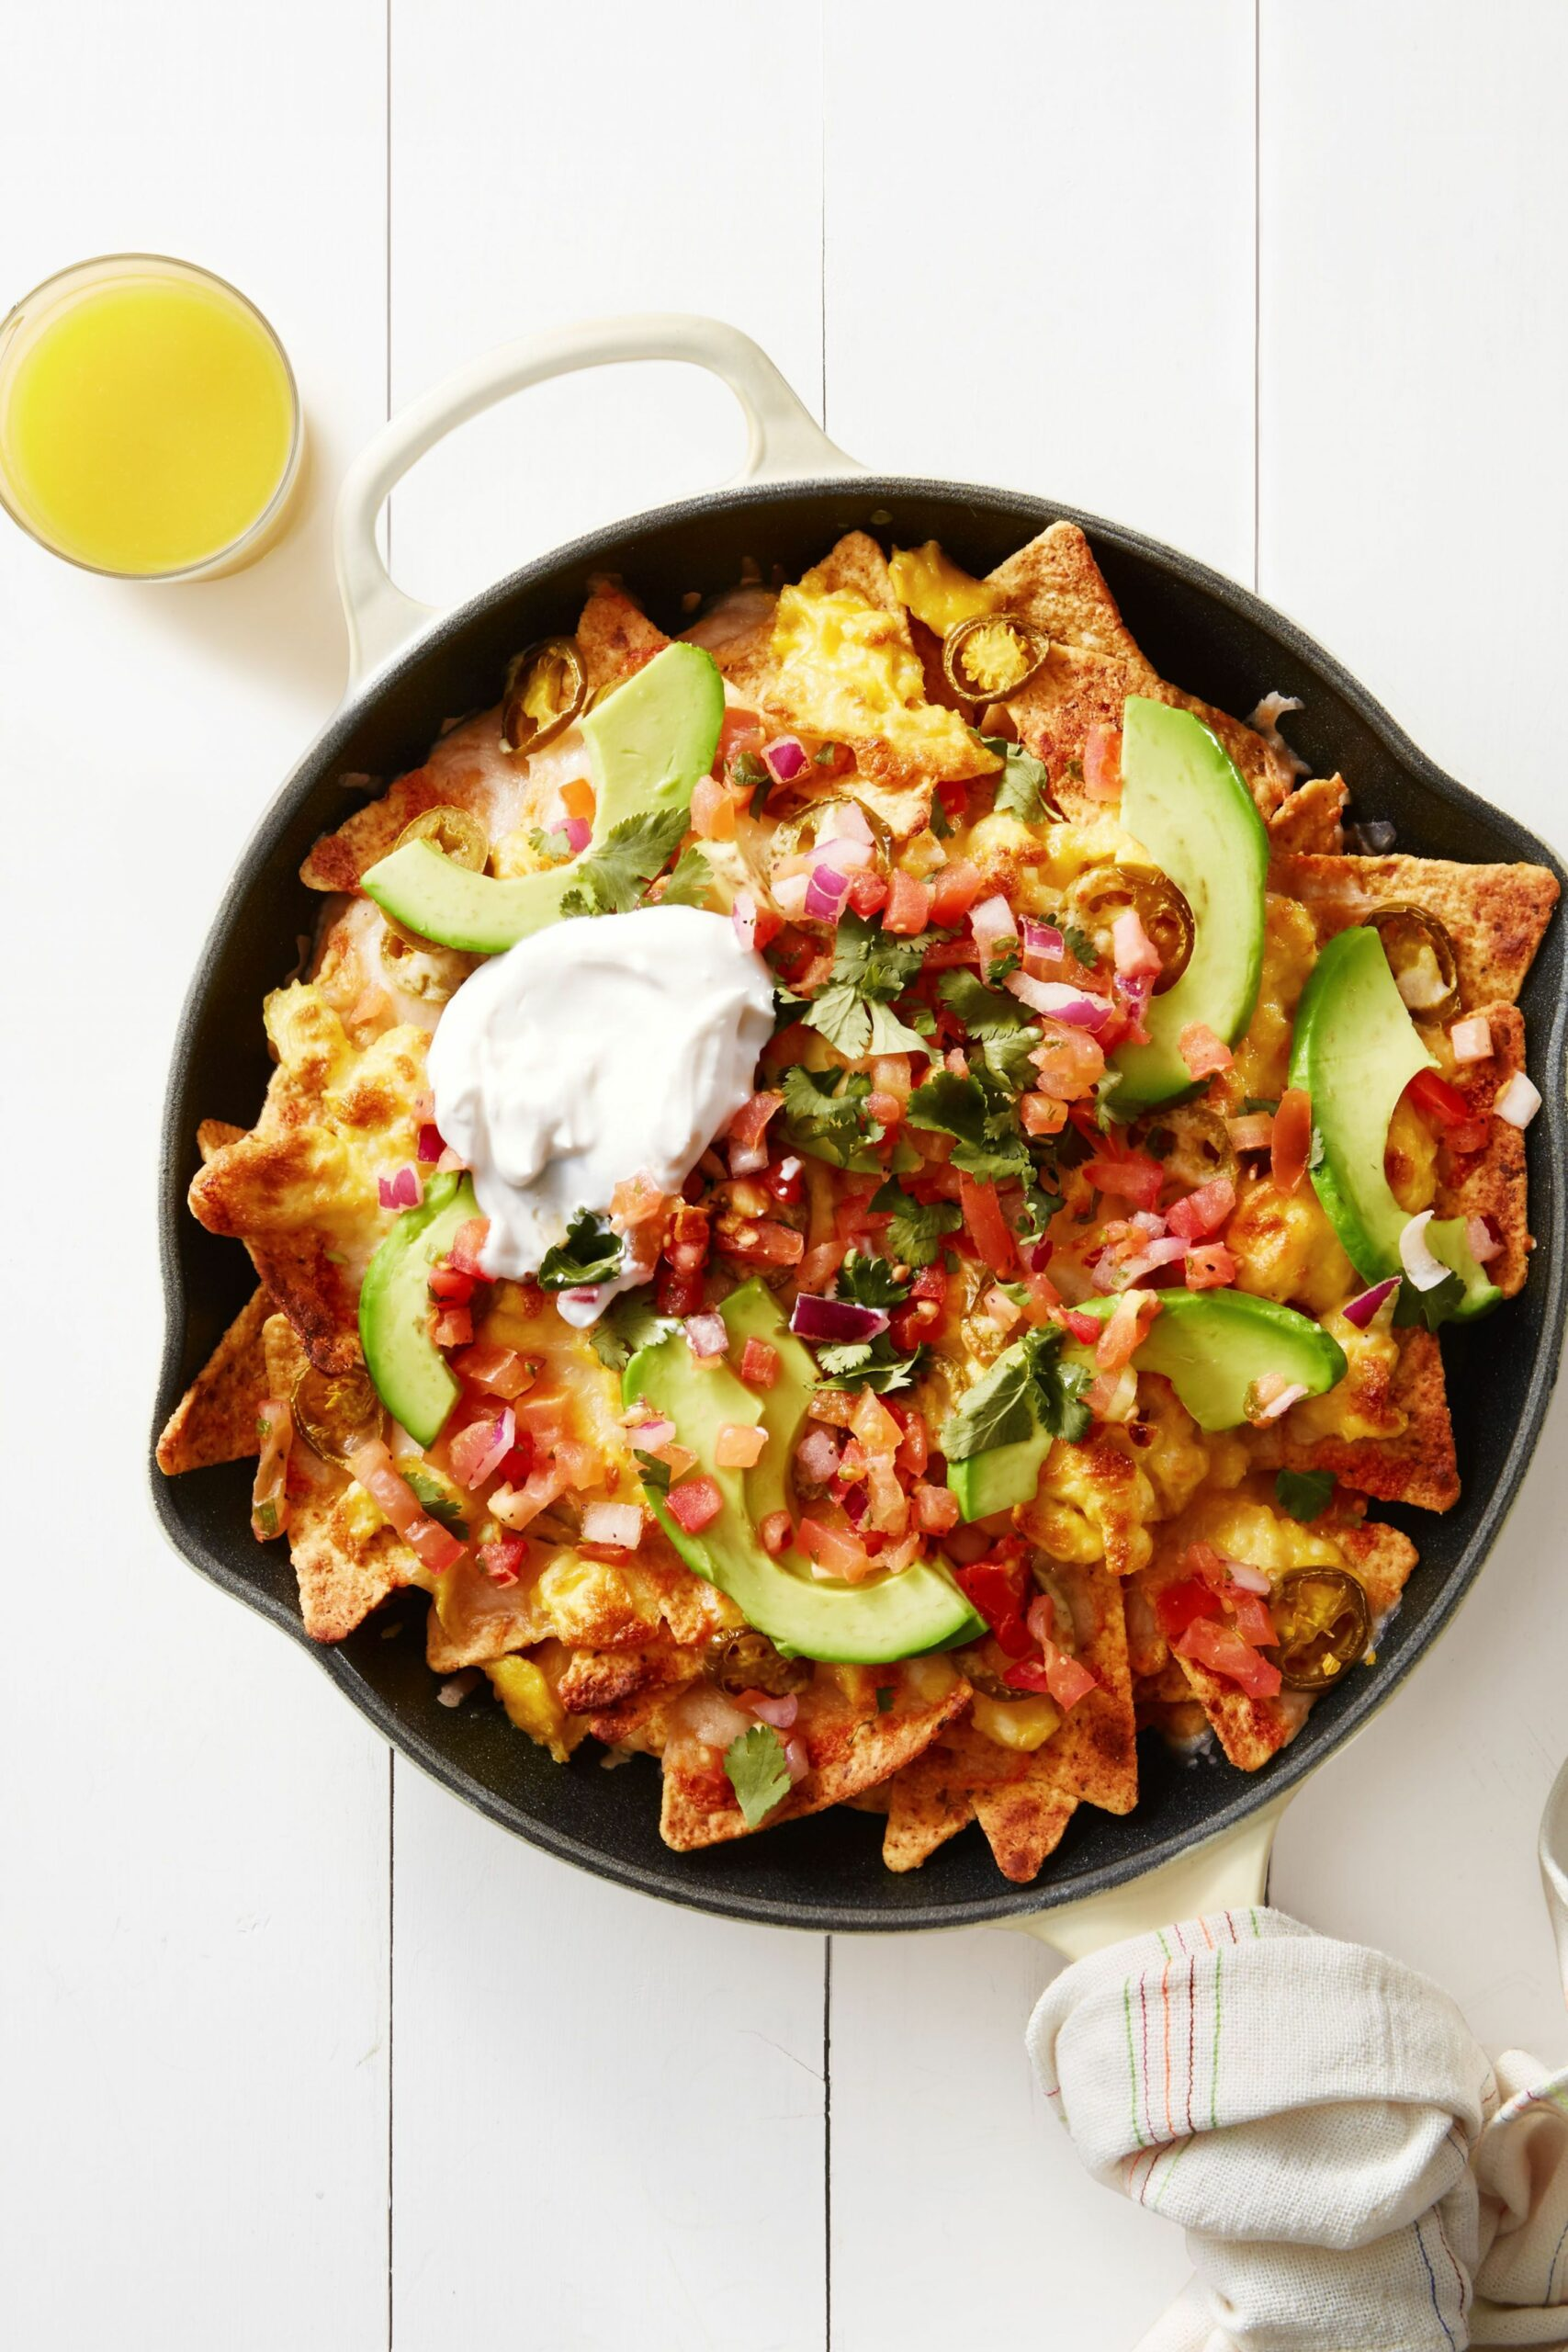 10 Easy Breakfast Ideas - Quick and Healthy Breakfast Recipes